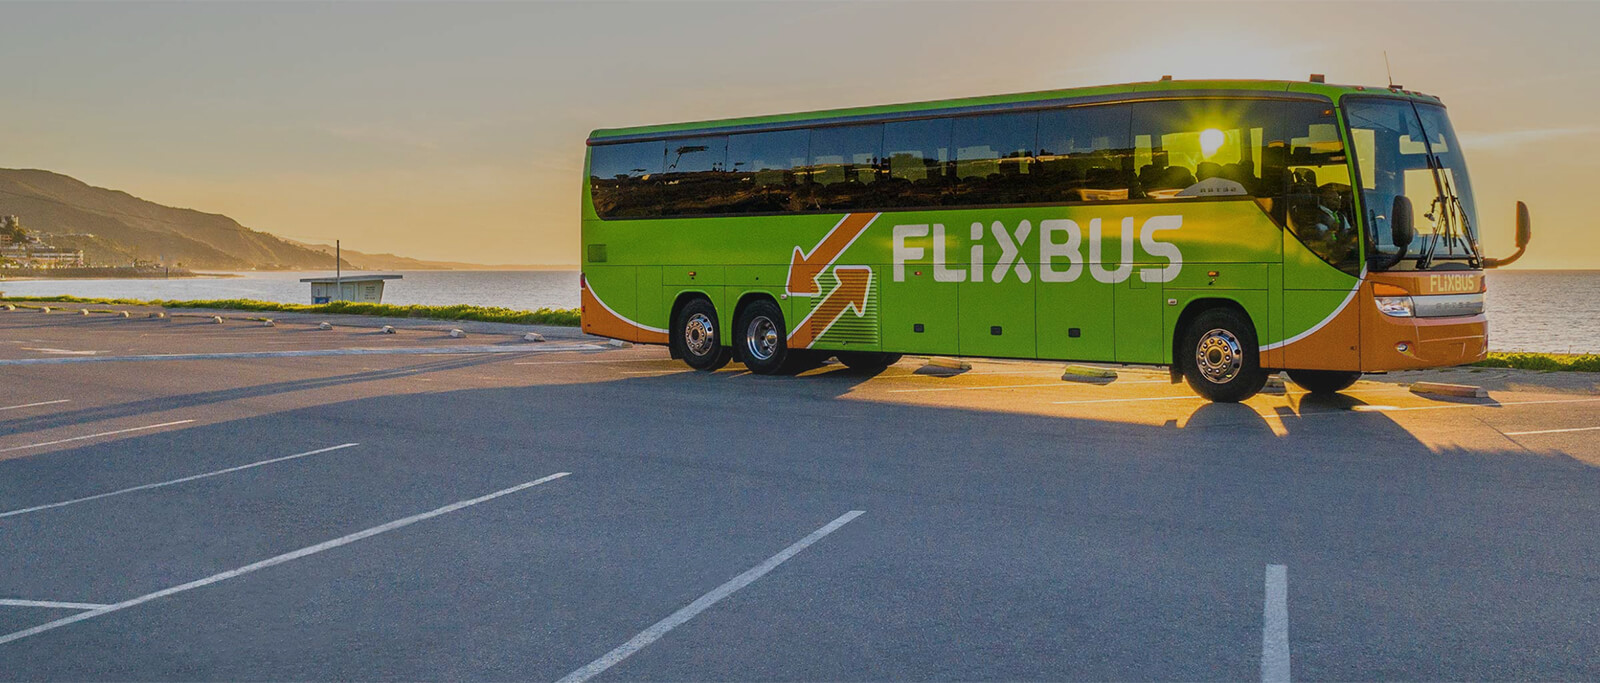 Ikea Küche Login Flixbus Convenient And Affordable Bus Travel In The Us From 2 99